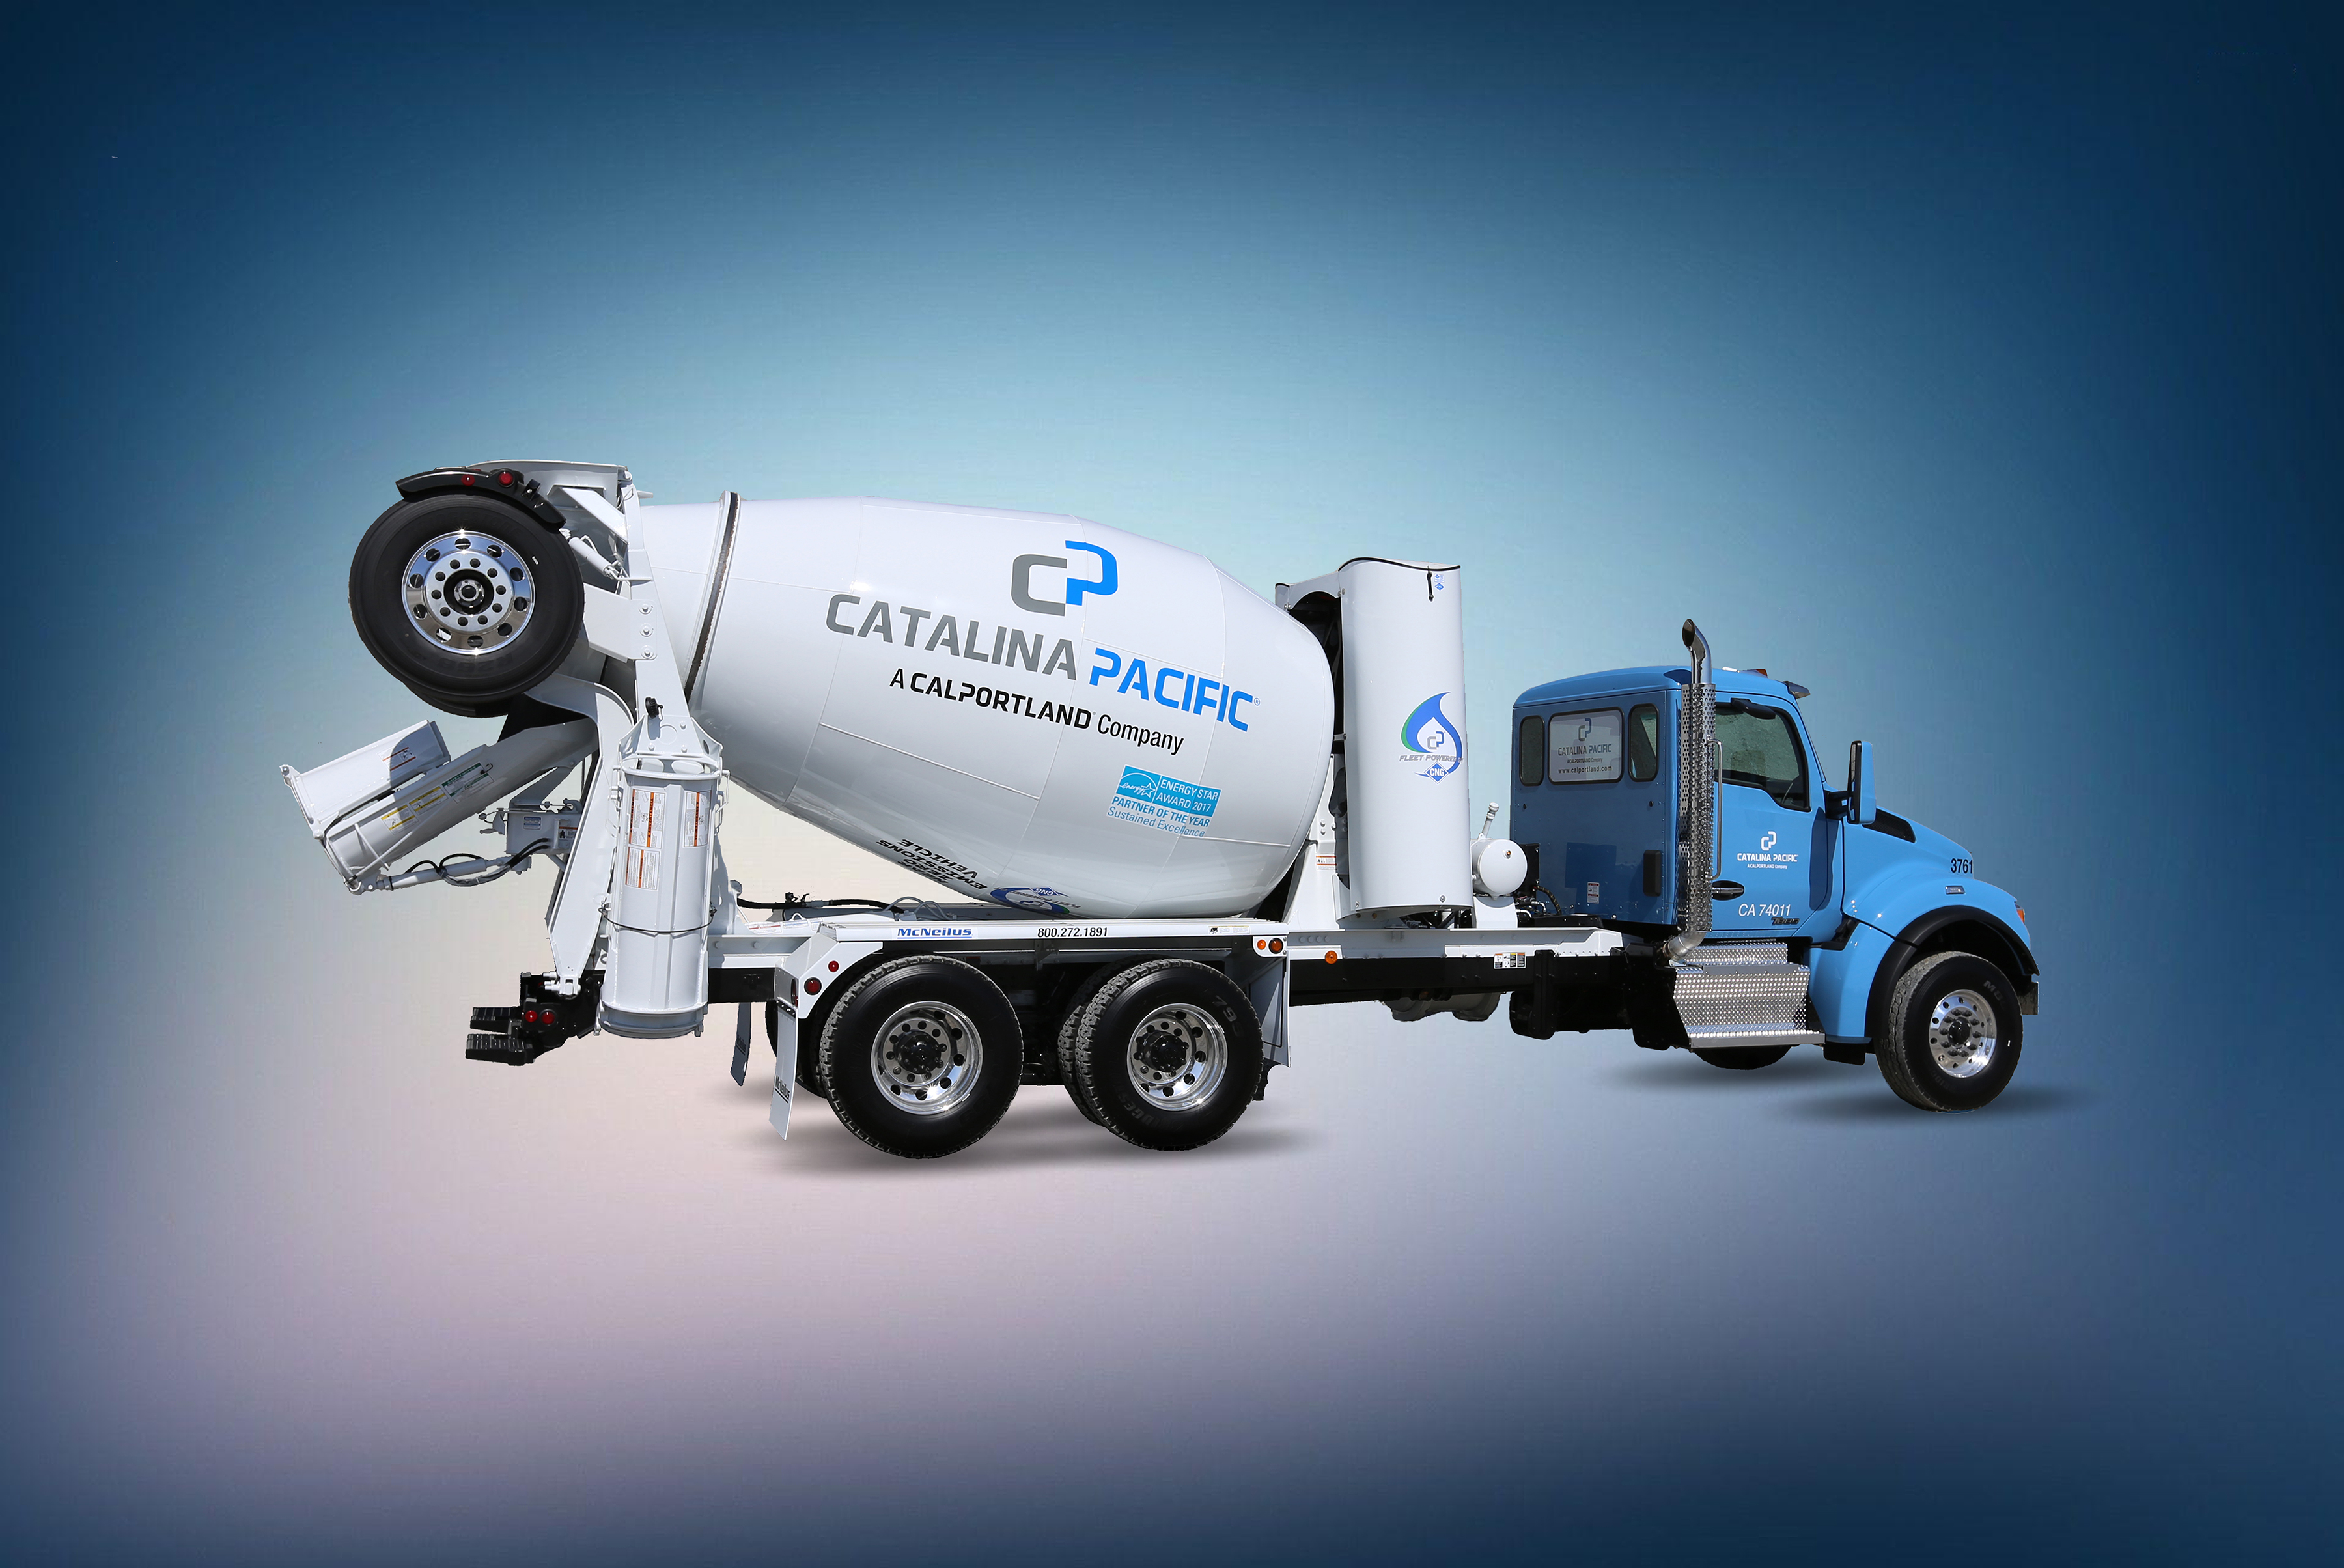 Large CNG-Powered Concrete Mixer Fleet Rolls Out in Southern